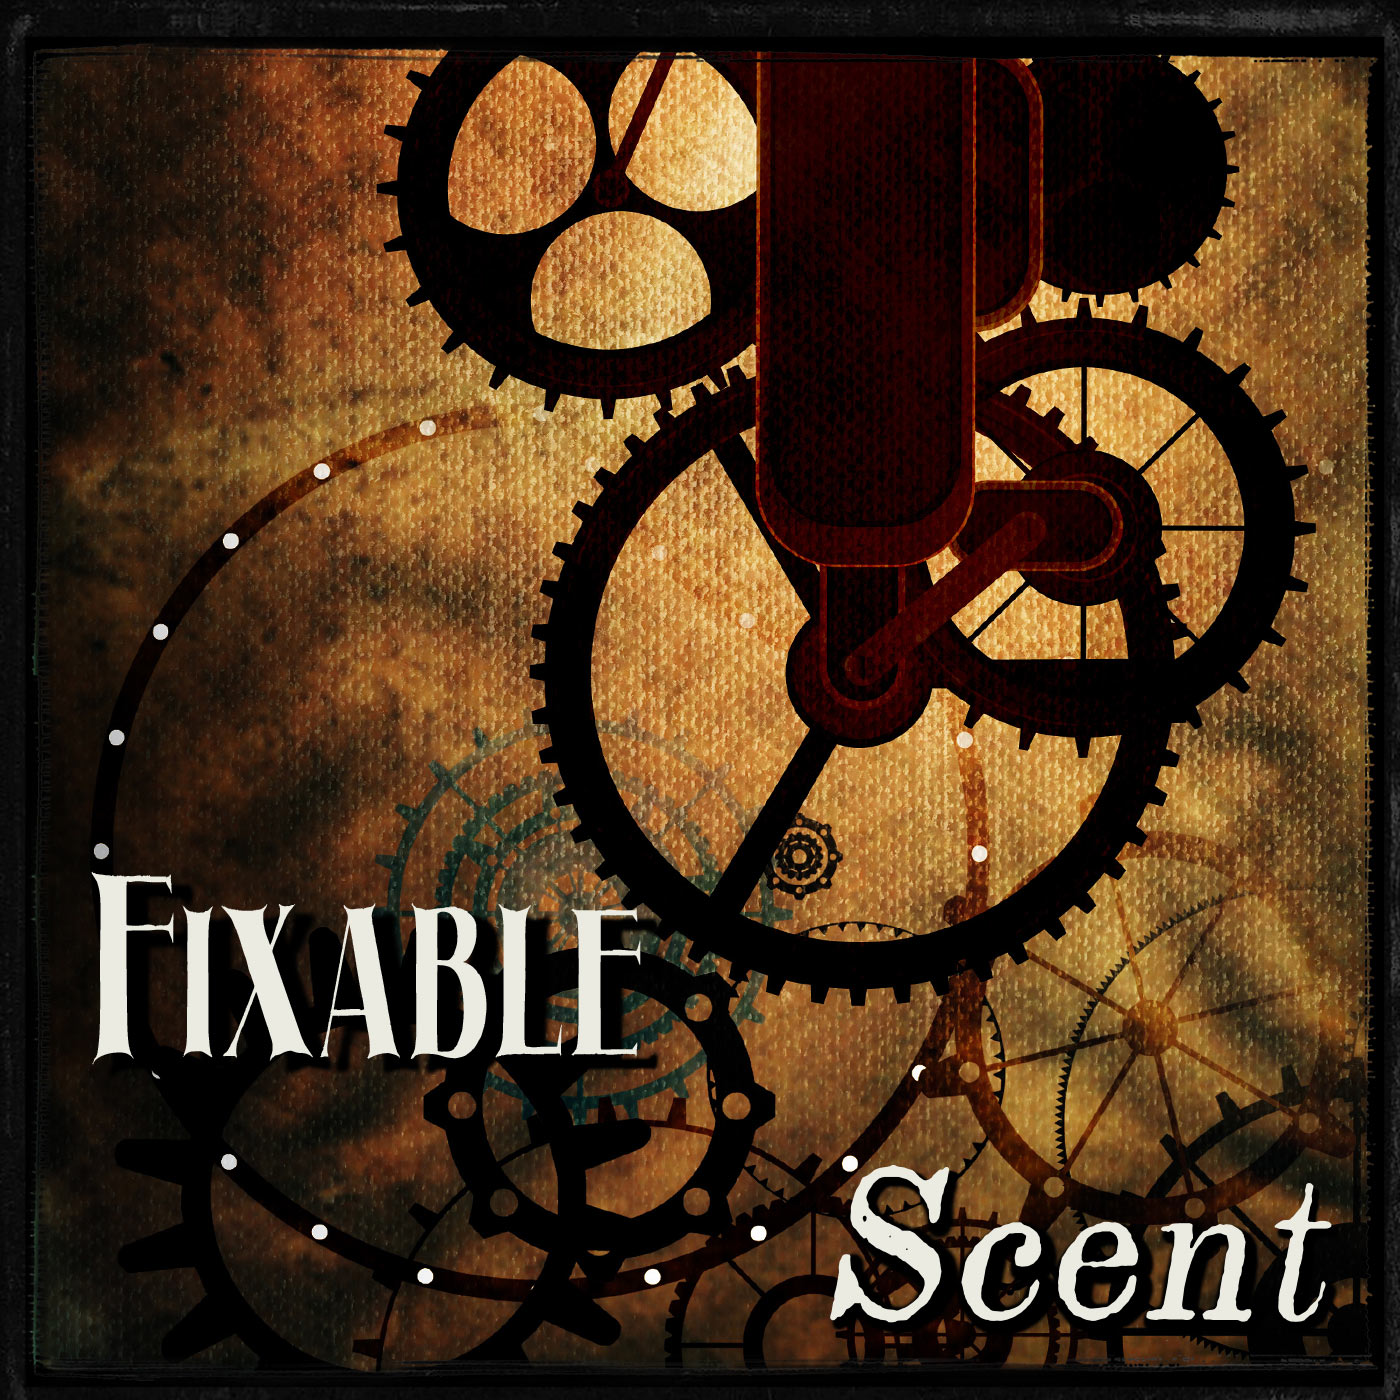 Fixable by Sheliah Lindsey and Scent by Maria Haskins